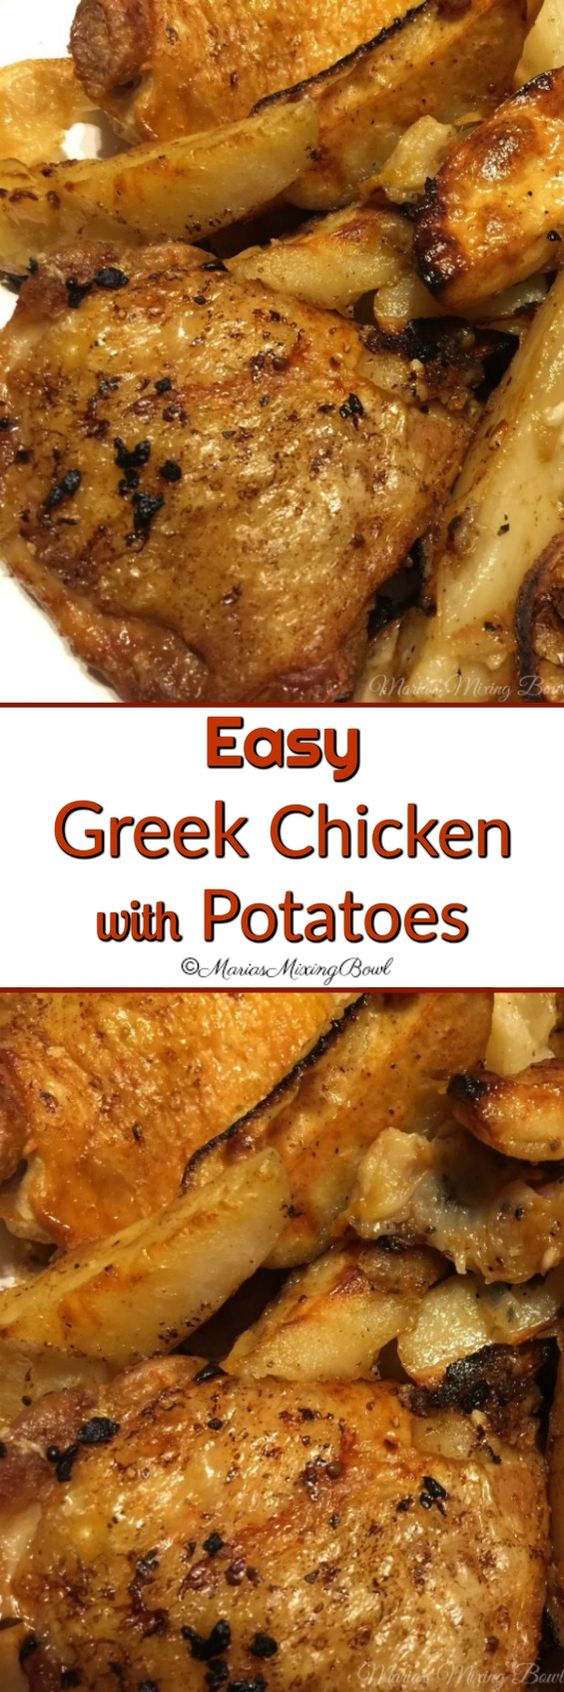 Easy Greek Chicken and Potatoes -  This simple dish is prepared in single pan. It is an easy weeknight dinner and  one of our family favorites.